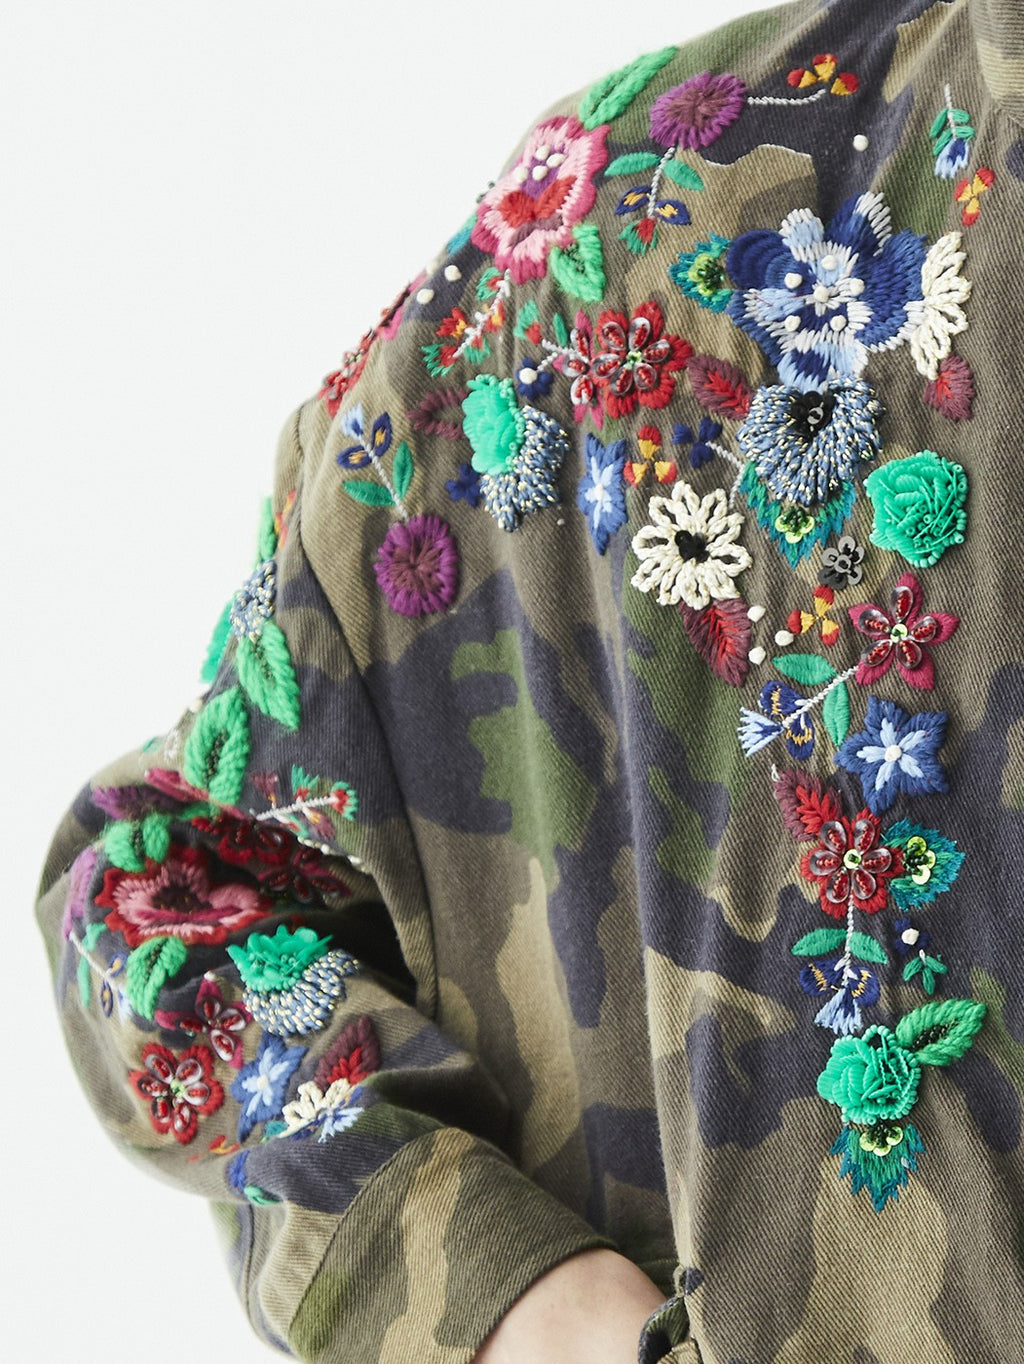 Vilagallo ANIA Camouflage Jacket with Embroidered Flowers Camouflage.